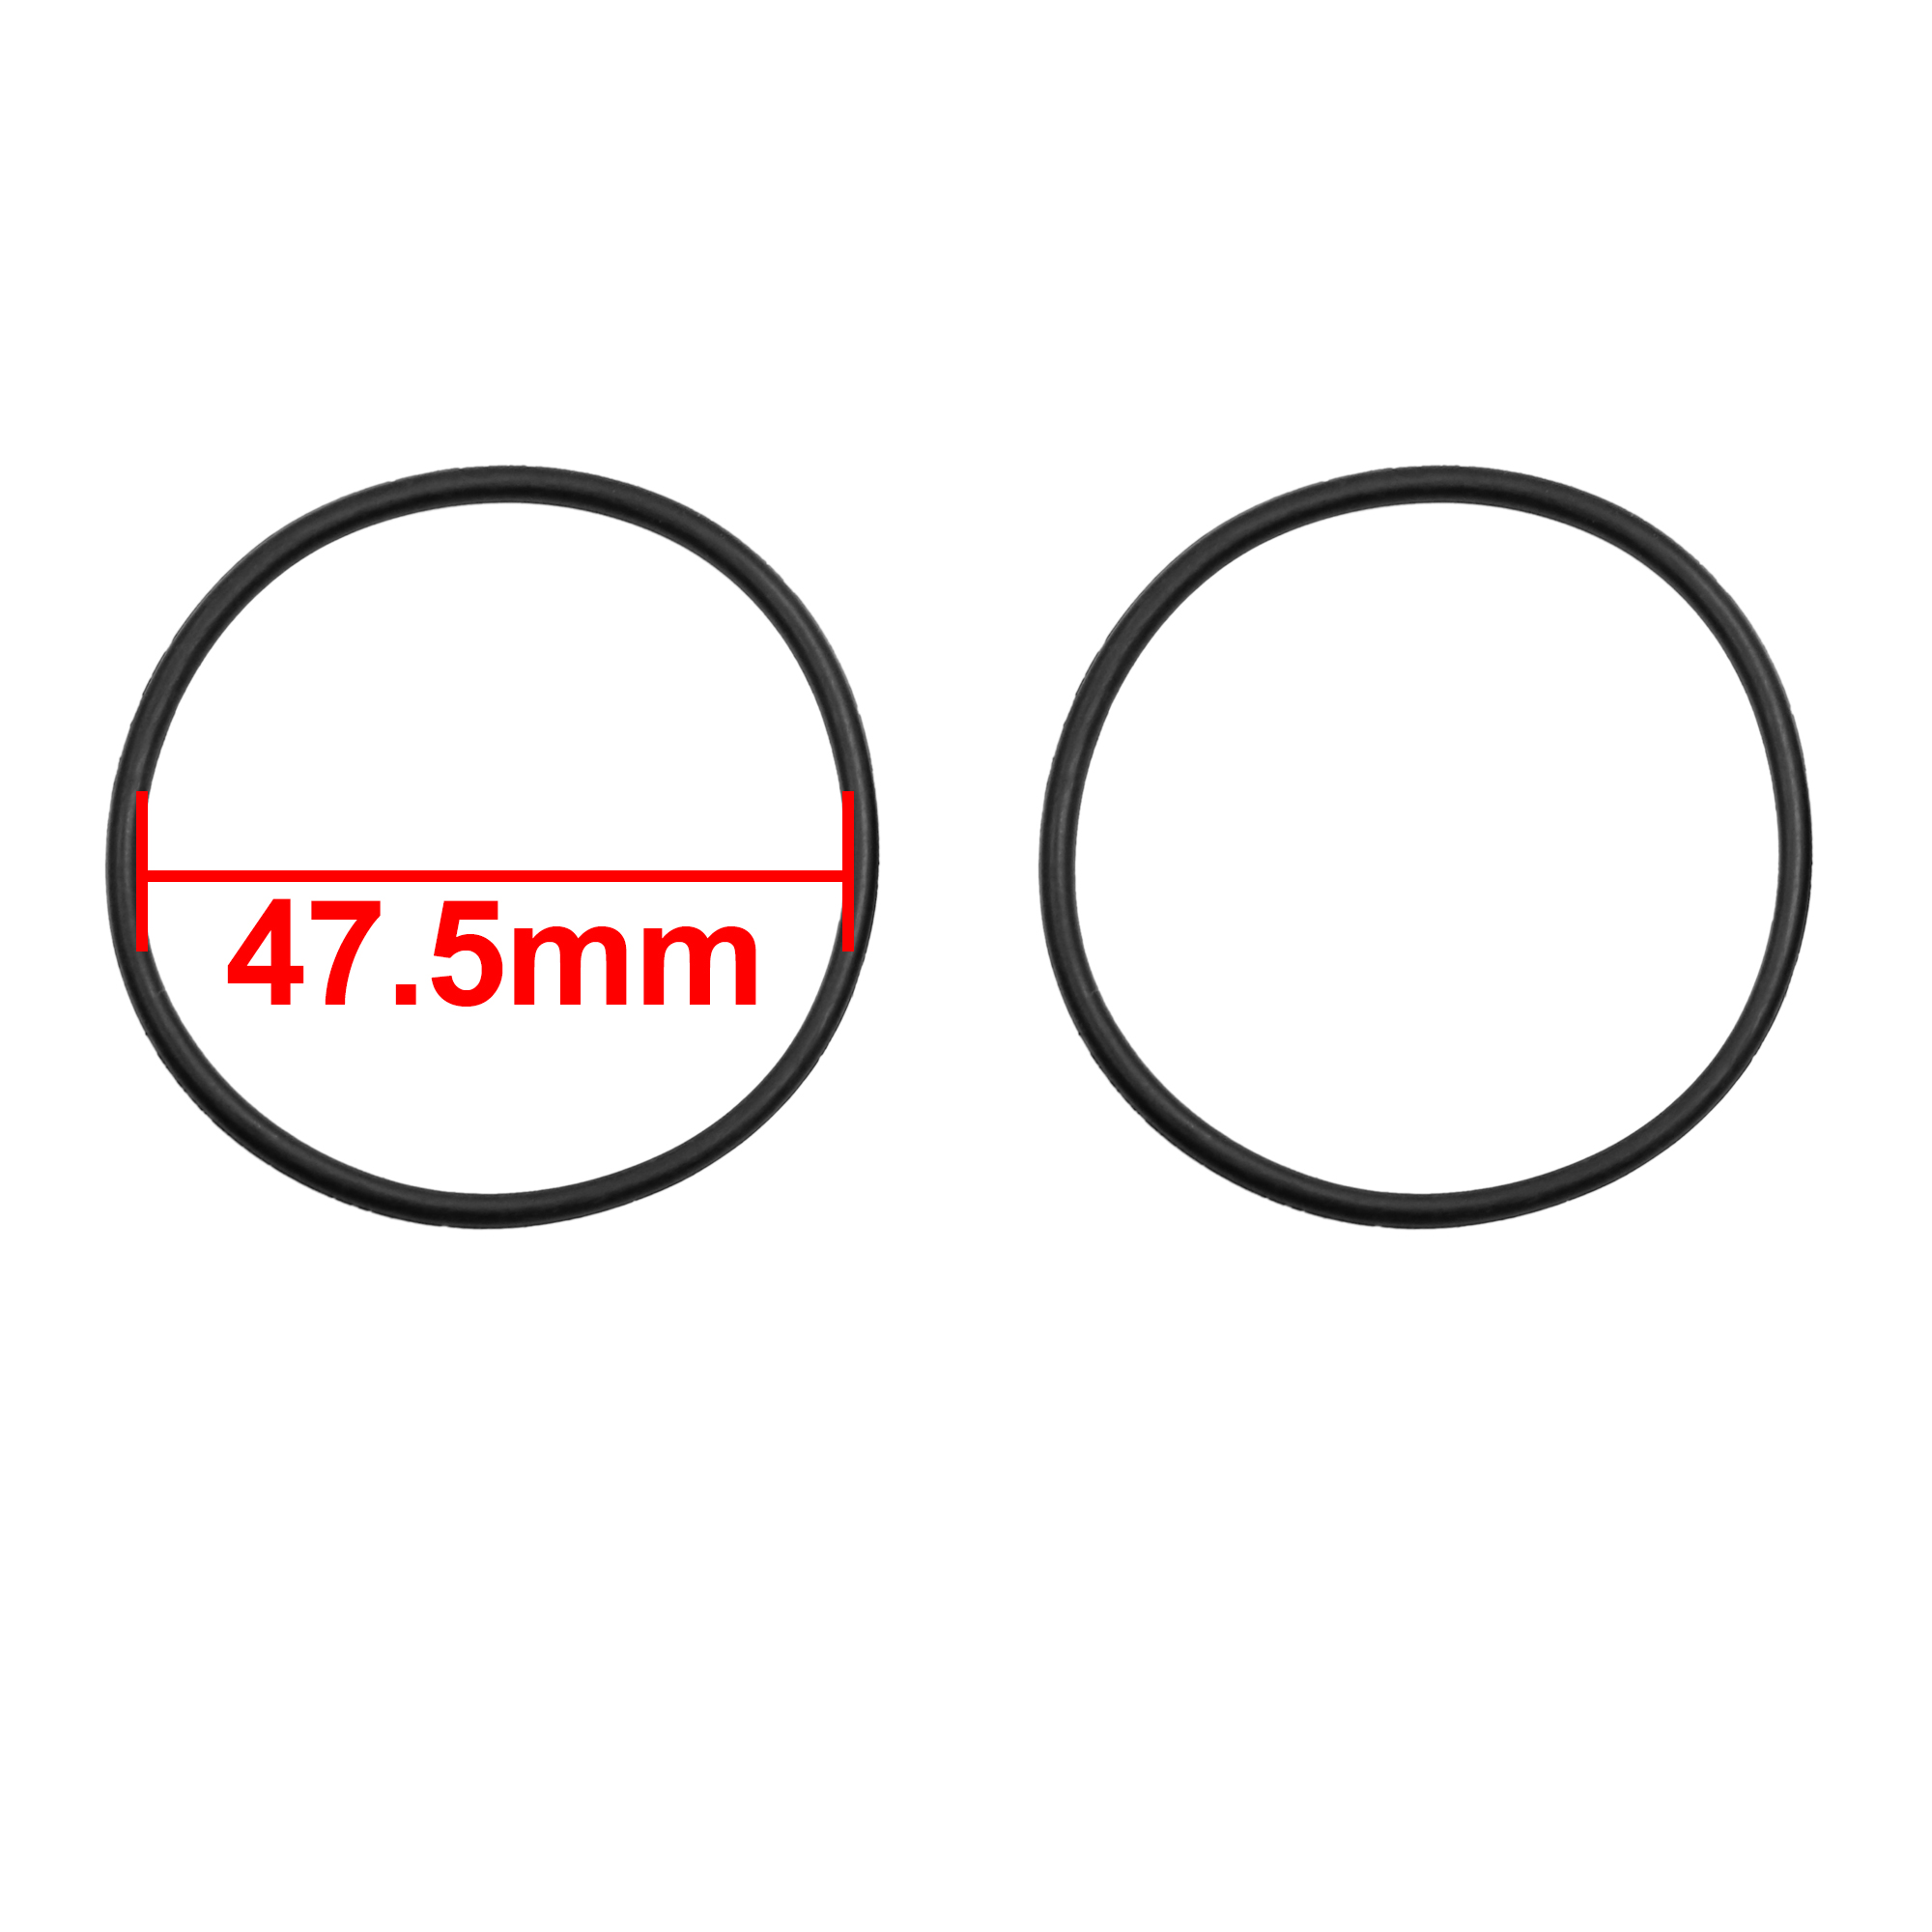 20pcs Rubber O Ring Washer Car Air Conditioning Gasket Sealing 47.5 x 2.65mm - image 1 of 2